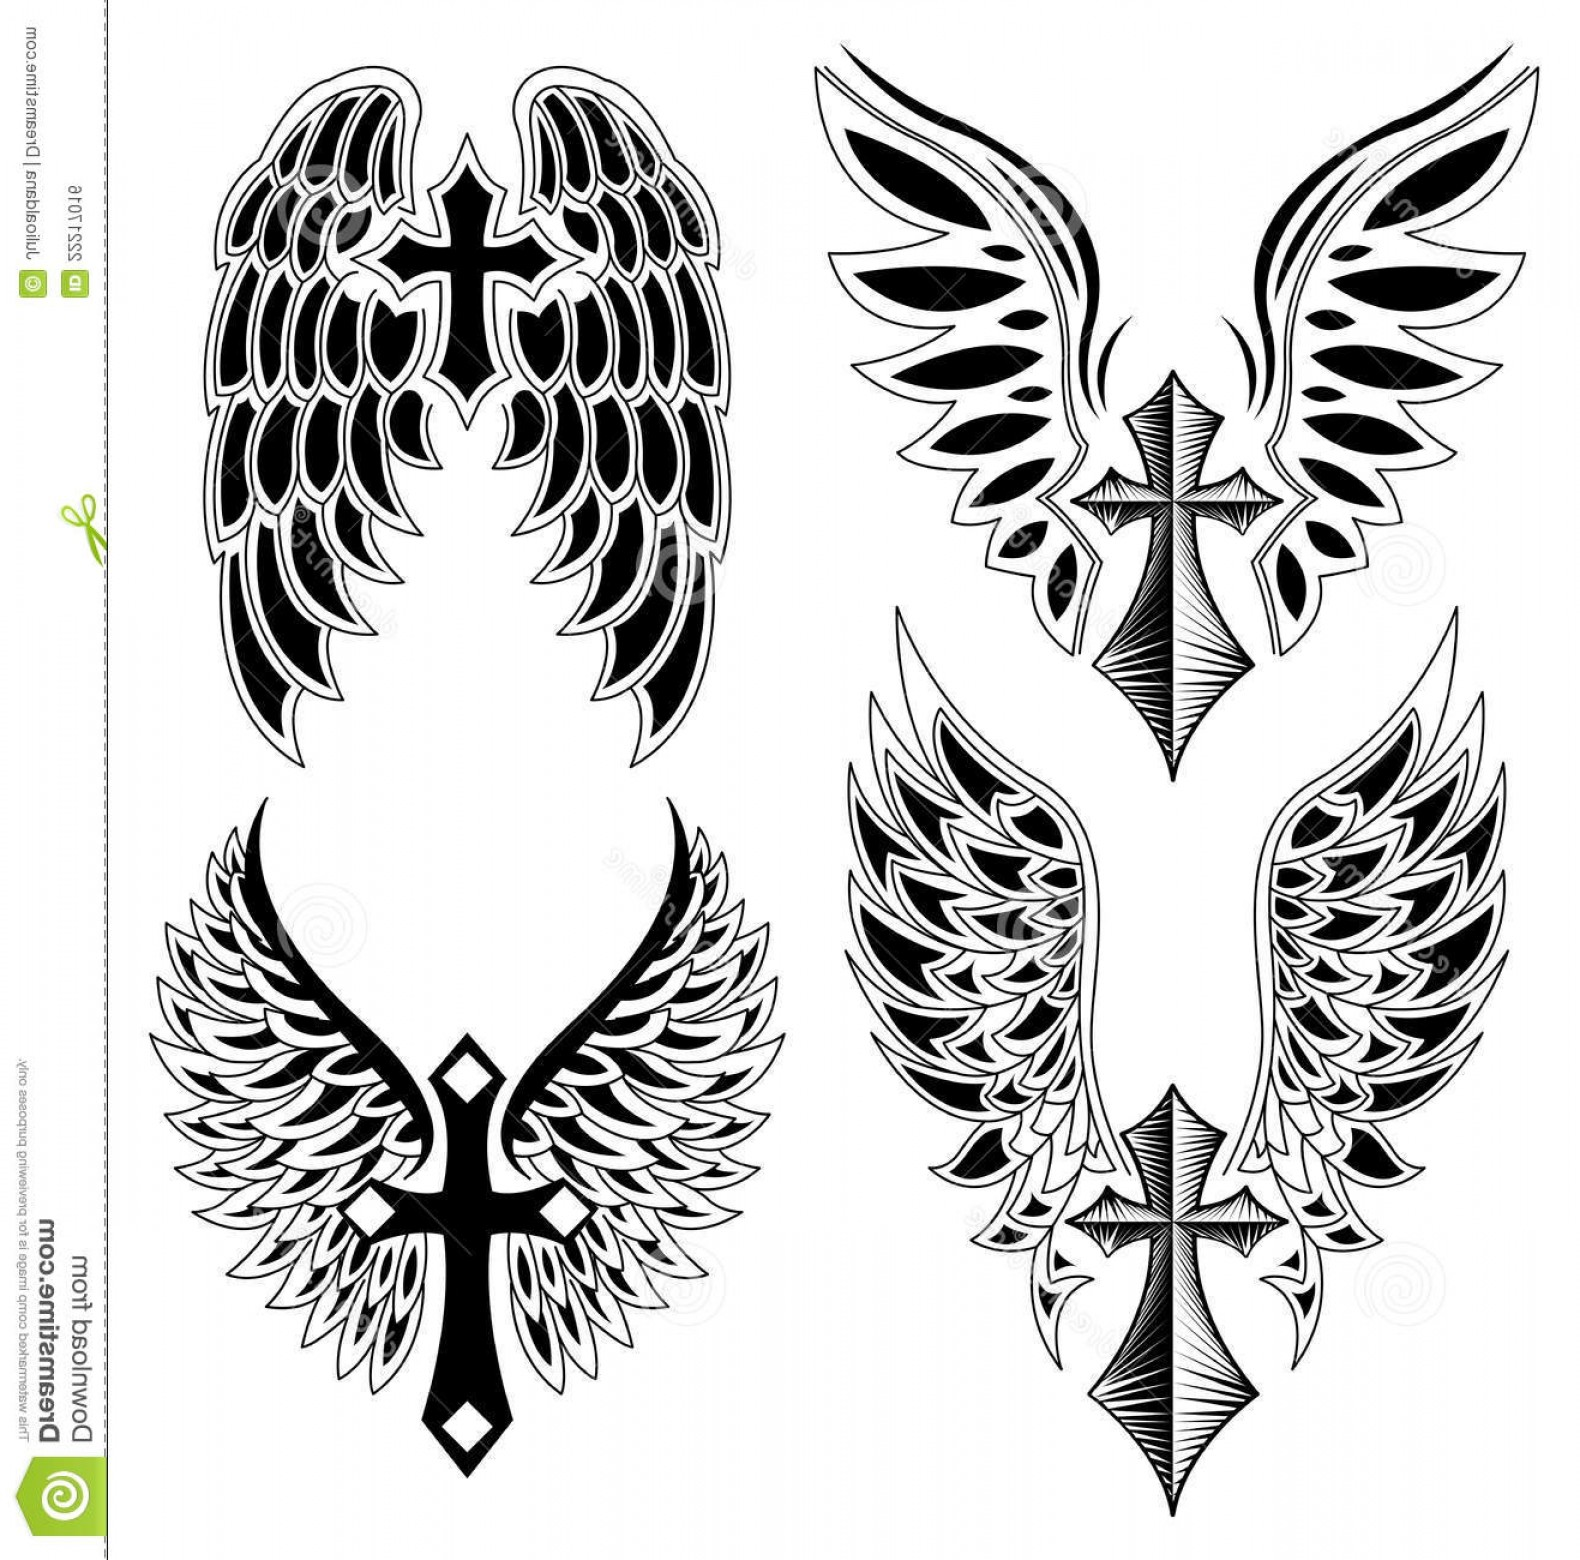 Angel Wings Tattoo Tribal Vector: Royalty Free Stock Image Set Cross Wings Tattoo Elements Vector Image